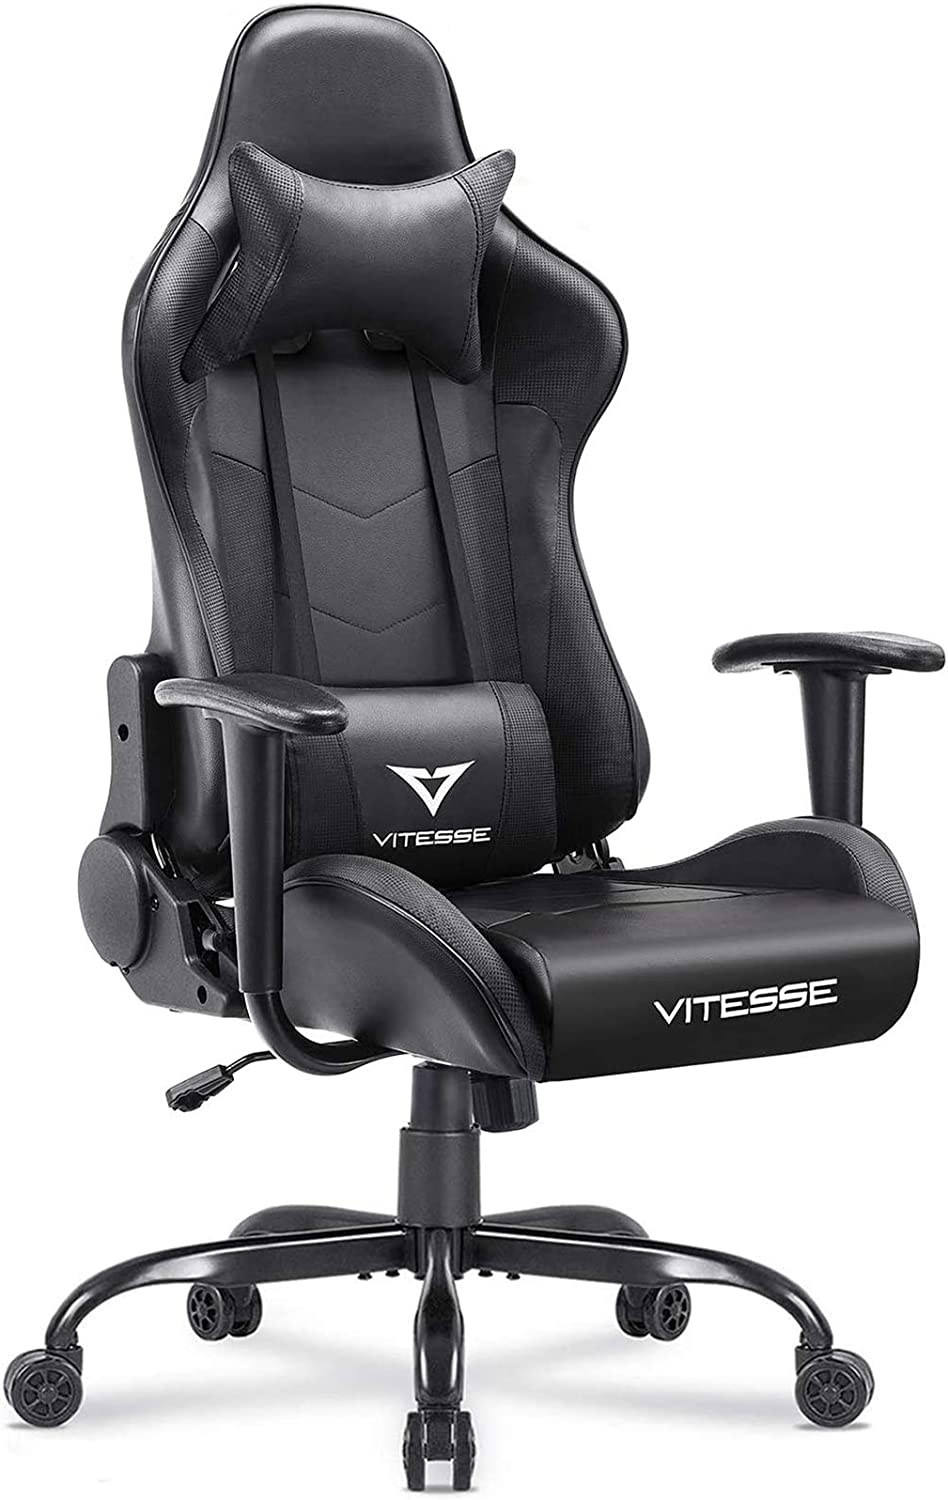 VIT Computer Gaming Chair Racing Style High-Back PC Chair Ergonomic Office Desk Chair Swivel E-Sports Leather Chair with Lumbar Support and Headrest (Carbon Fiber Black)